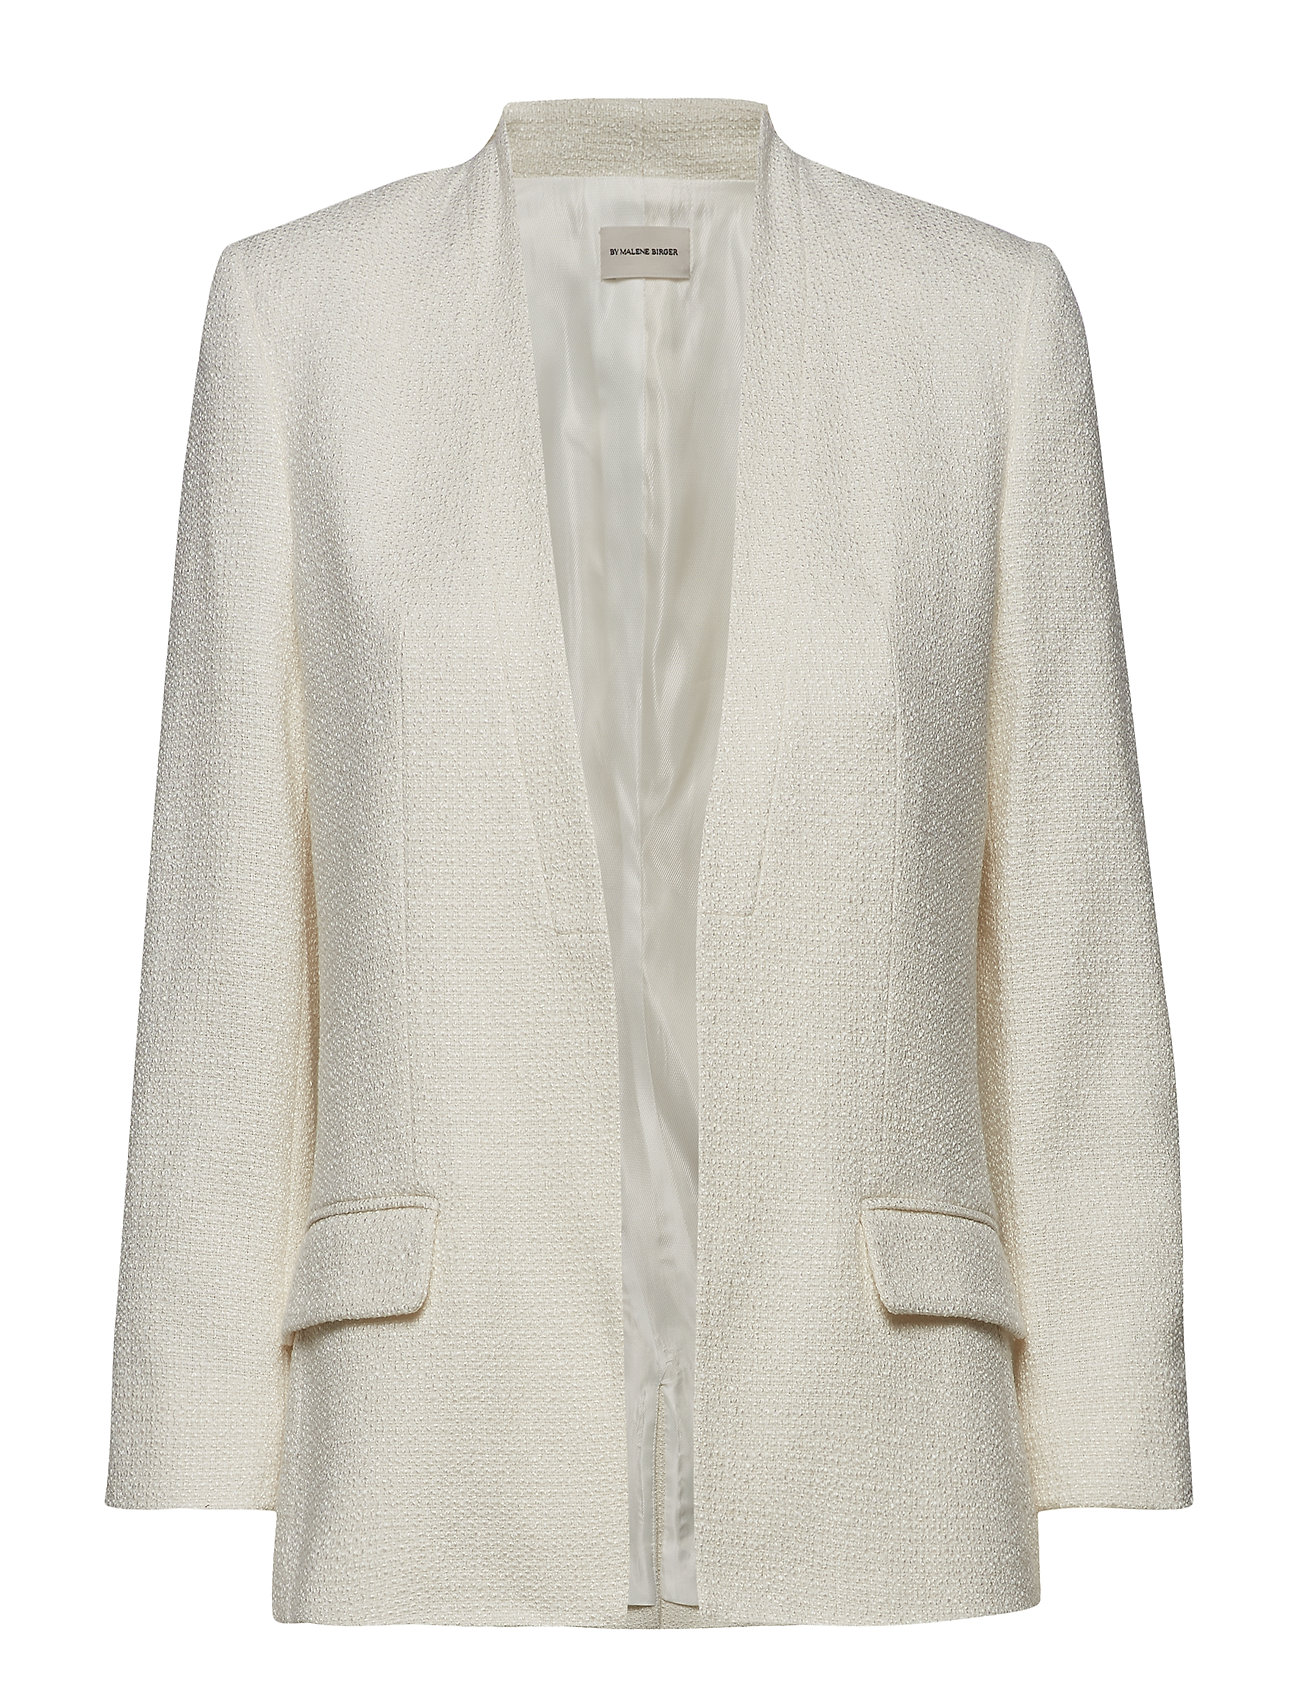 By Malene Birger BLA1010S91 - CREAM